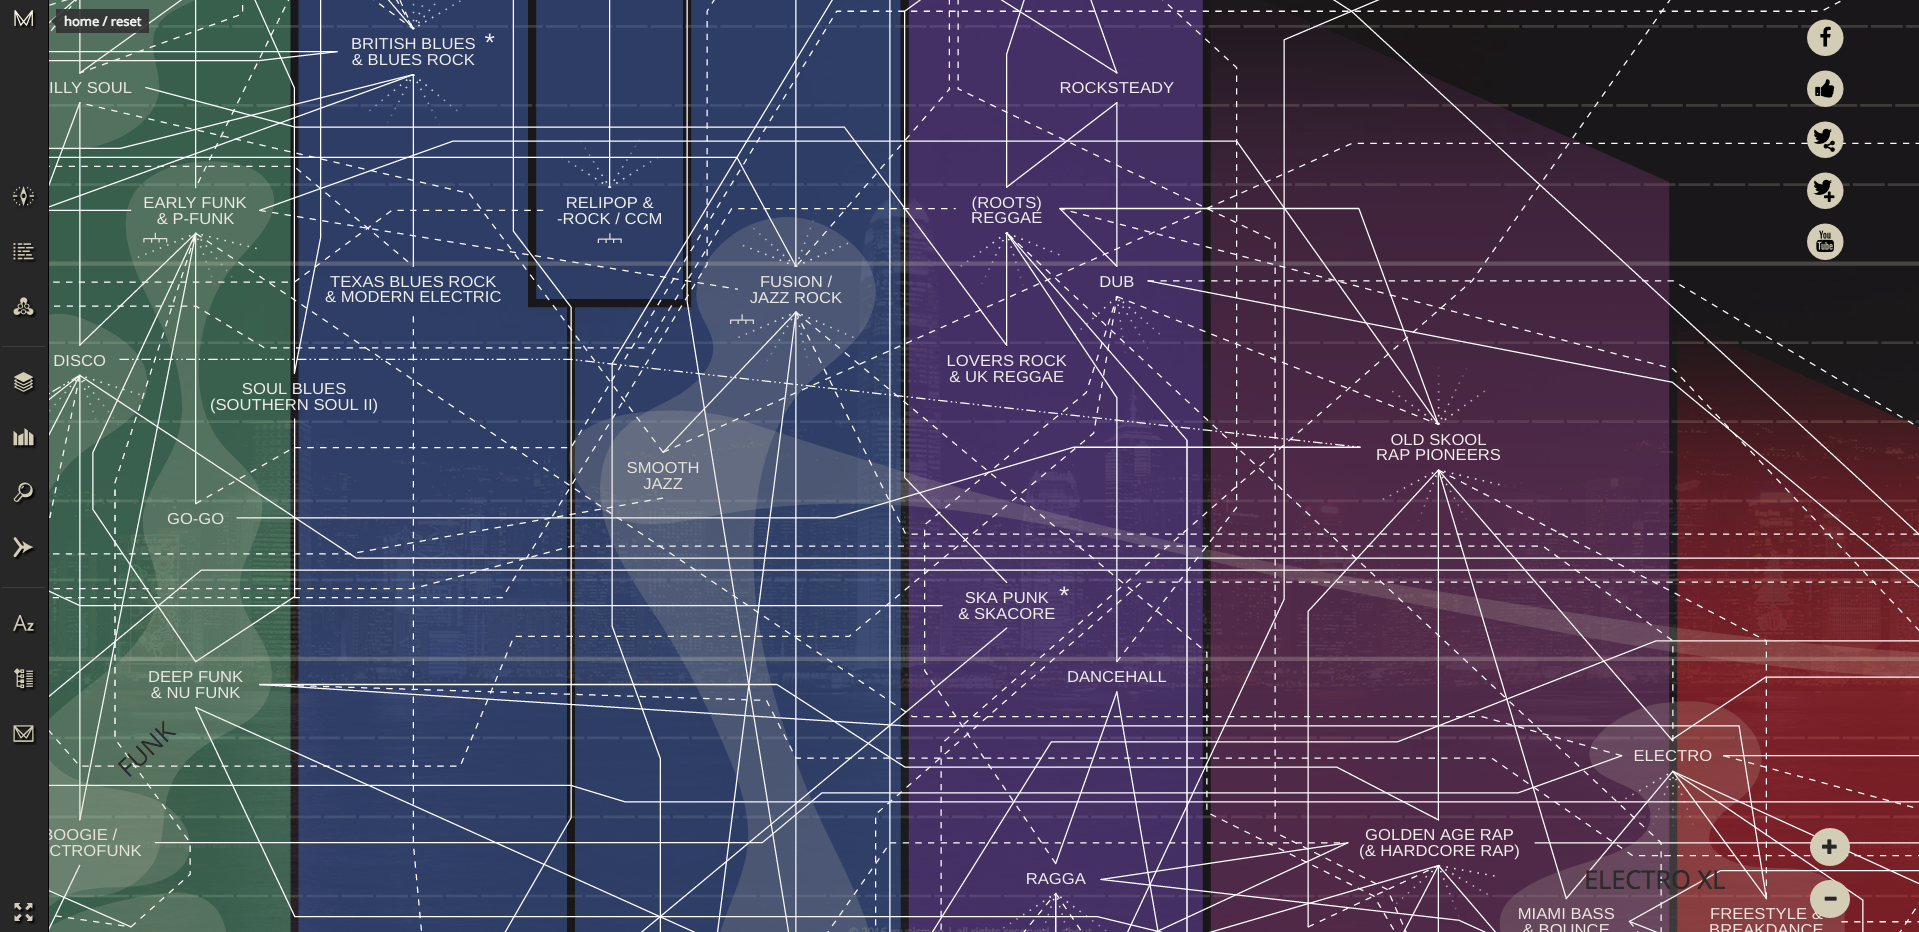 Behold the MusicMap: The Ultimate Interactive Genealogy of Music Created Between 1870 and 2016